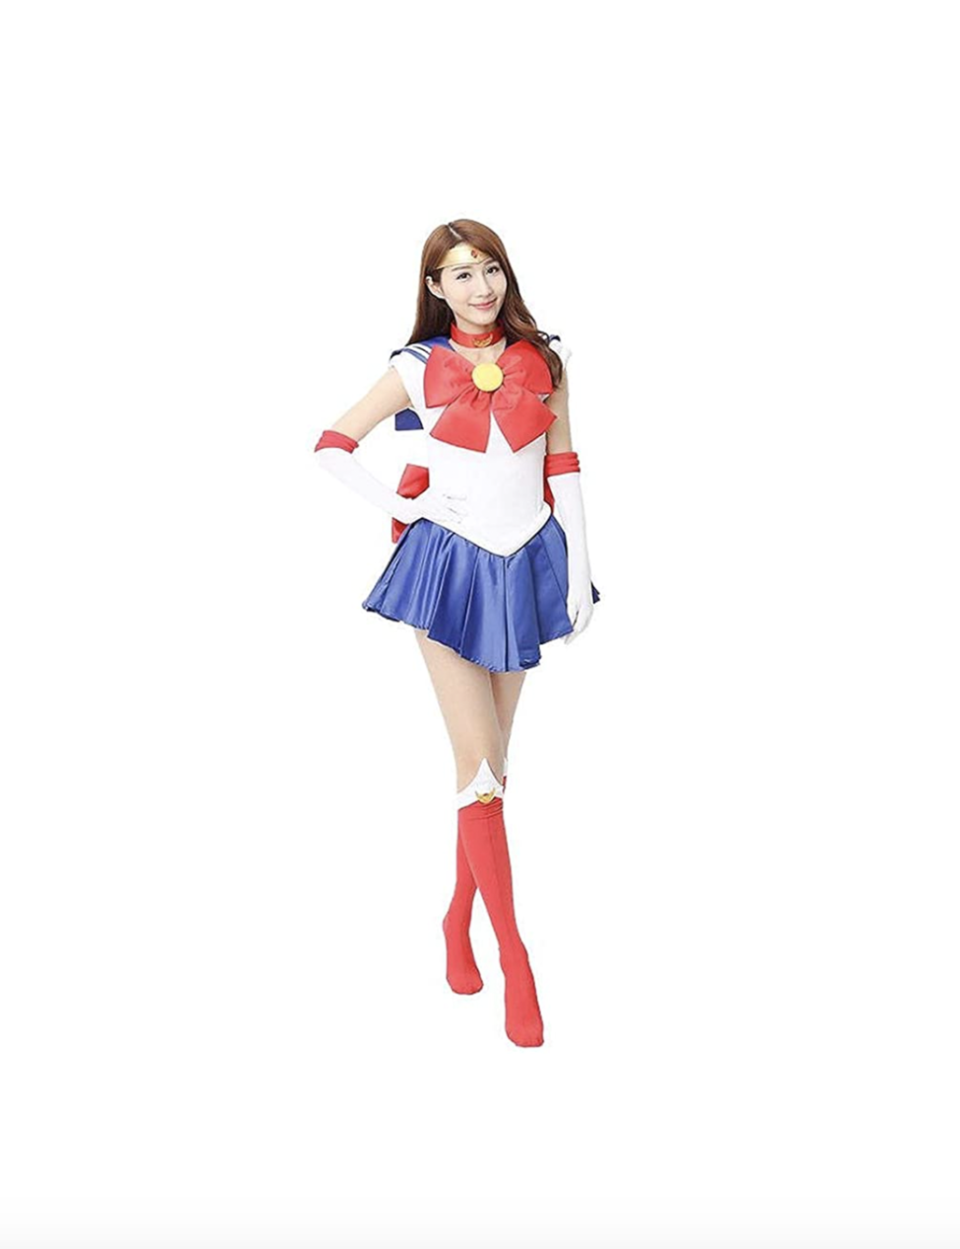 """<p><strong>Cosplay Life</strong></p><p>amazon.com</p><p><strong>$64.99</strong></p><p><a href=""""https://www.amazon.com/dp/B07S4F2BG9?tag=syn-yahoo-20&ascsubtag=%5Bartid%7C10055.g.28102891%5Bsrc%7Cyahoo-us"""" rel=""""nofollow noopener"""" target=""""_blank"""" data-ylk=""""slk:Shop Now"""" class=""""link rapid-noclick-resp"""">Shop Now</a></p><p>Every '90s kid remembers<em> Sailor Moon</em>, the Japanese anime series about heroines in sailor suits who team up to save the world. All you need is a nautical-inspired outfit and a larger-than-life blonde wig to complete your look.</p>"""